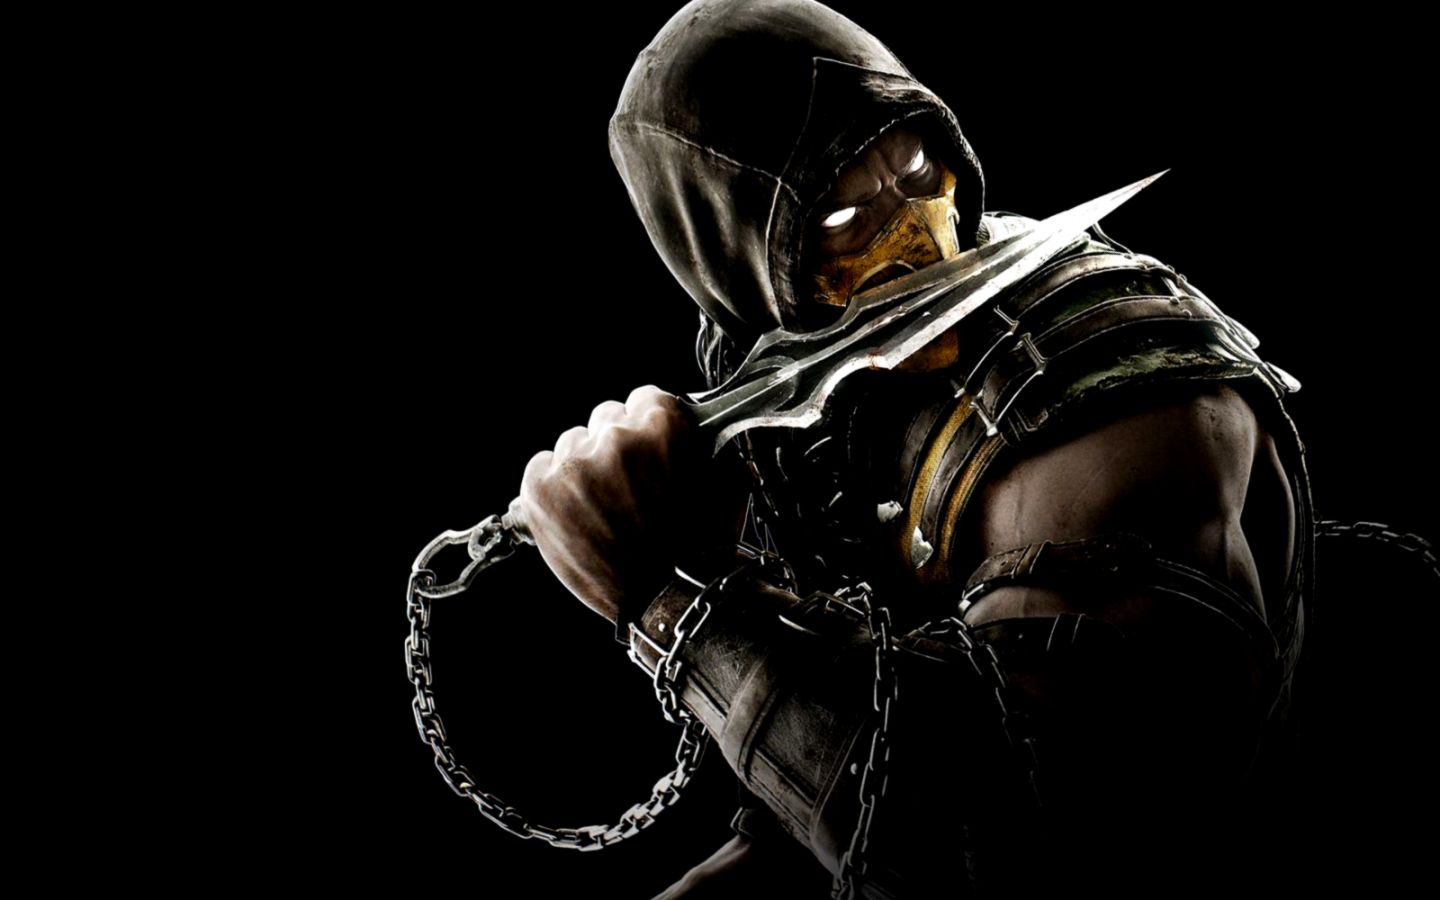 Mortal kombat x game wallpaper free download game - Mortal kombat scorpion wallpaper ...